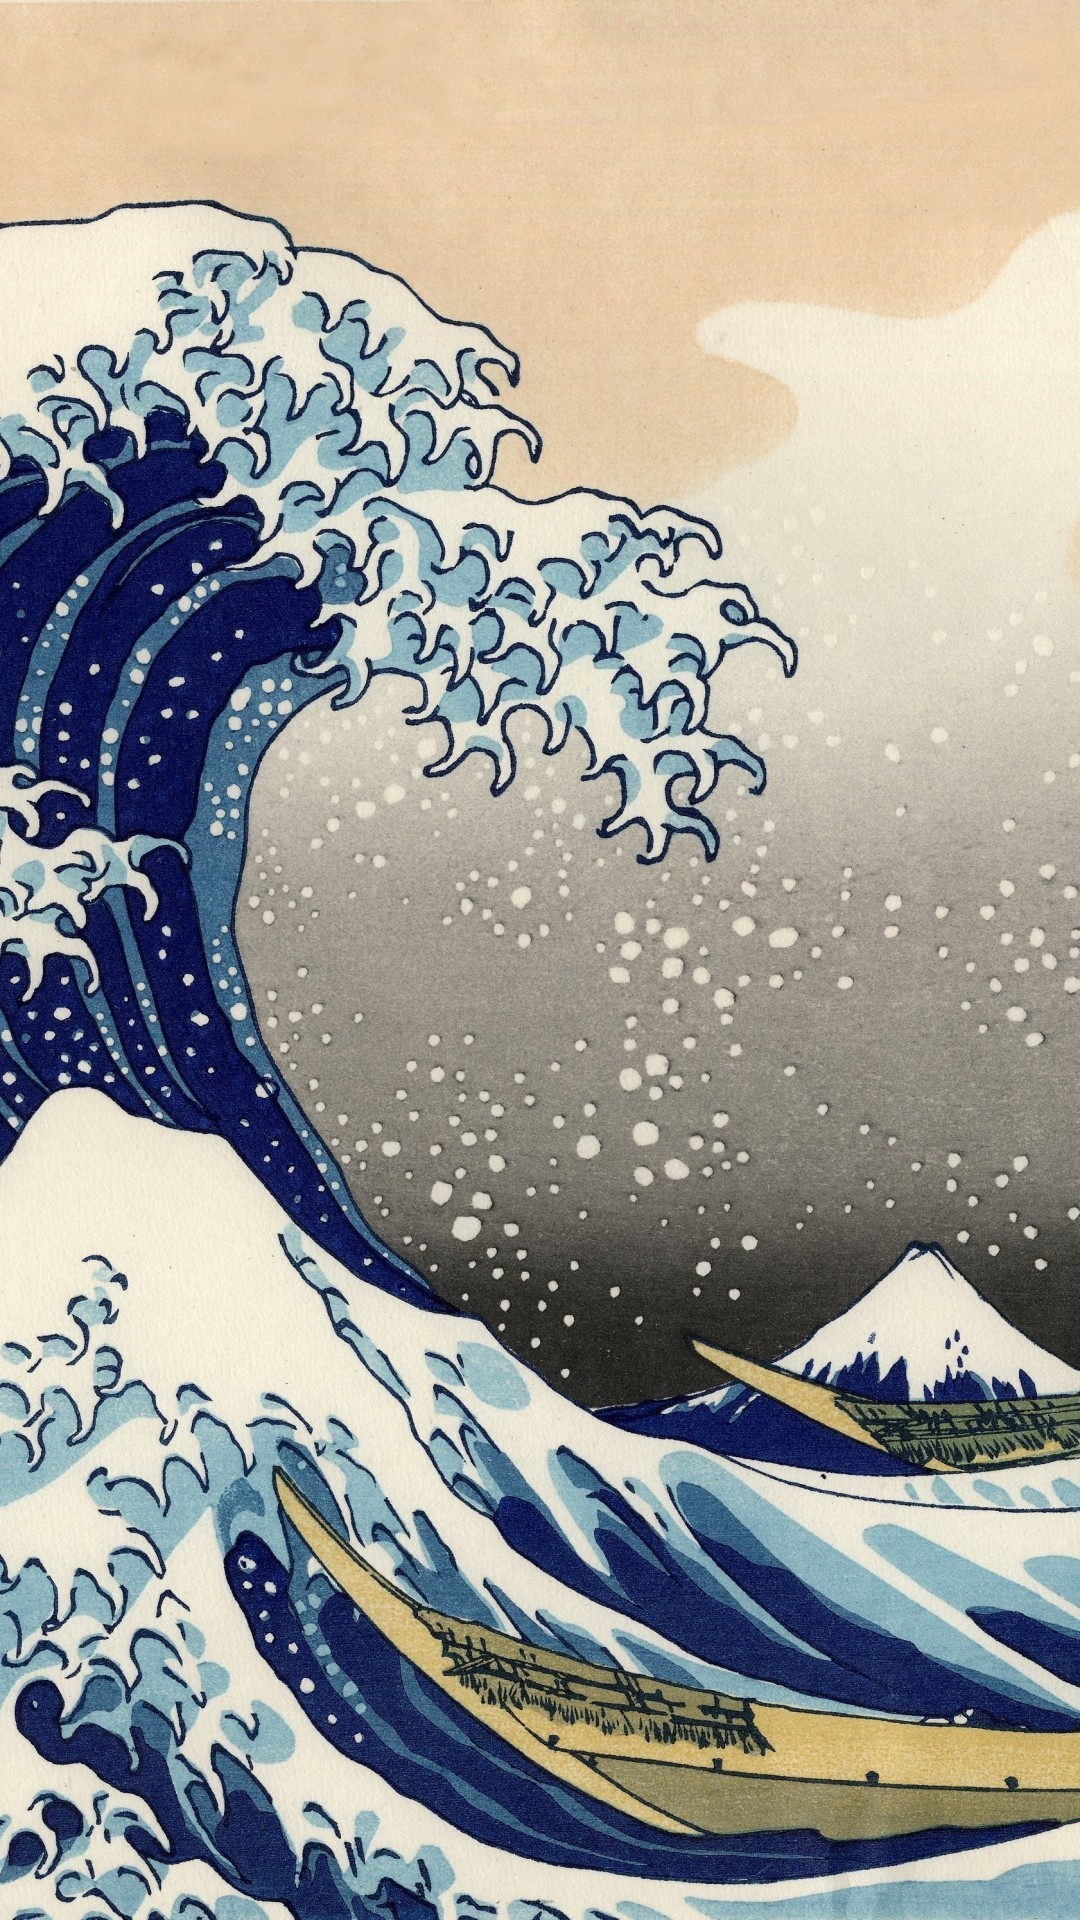 The Great Wave Off Kanagawa Wallpaper ·① WallpaperTag